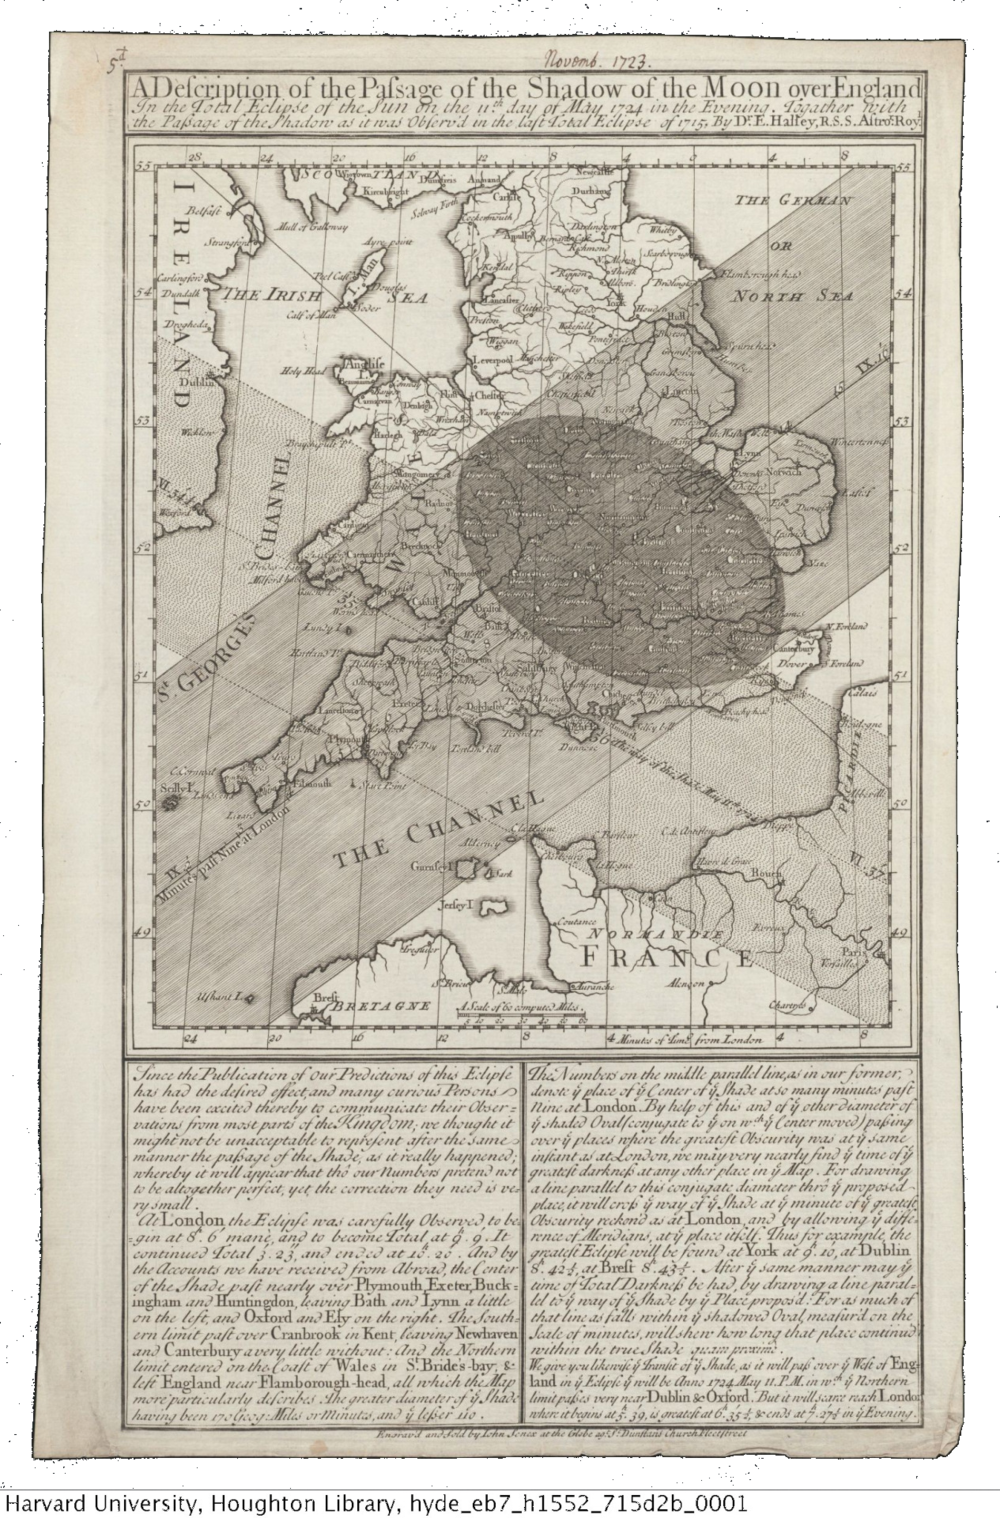 Click to see this map in the Houghton library collection at harvard university